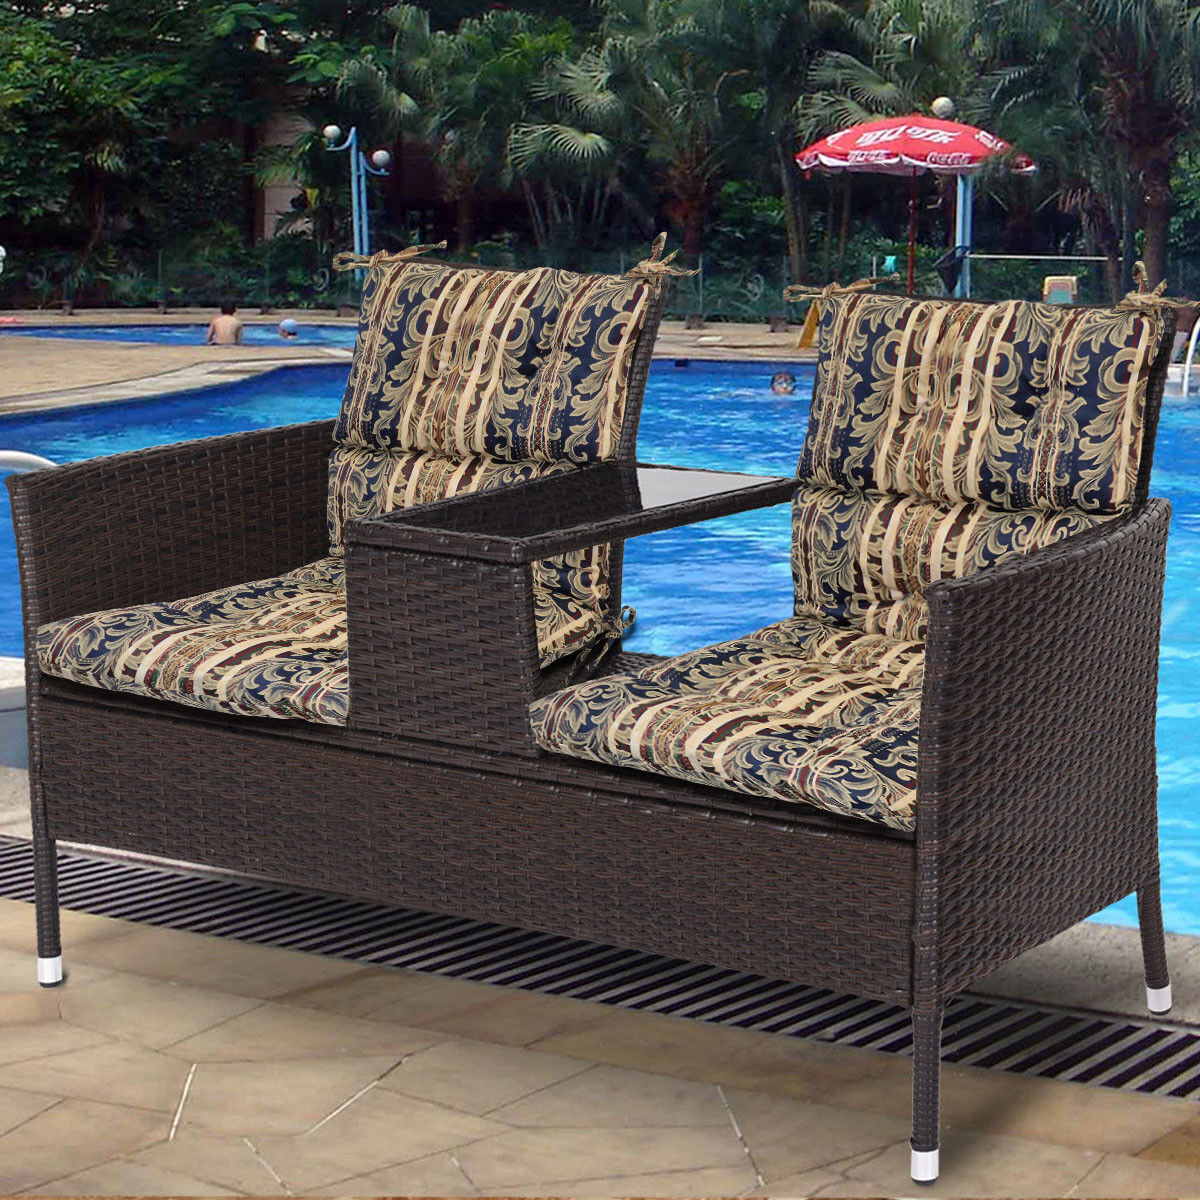 Details About Outdoor Indoor Pretty Wicker Seat Back Chair Cushion Made In Usa Floral Set Of 2